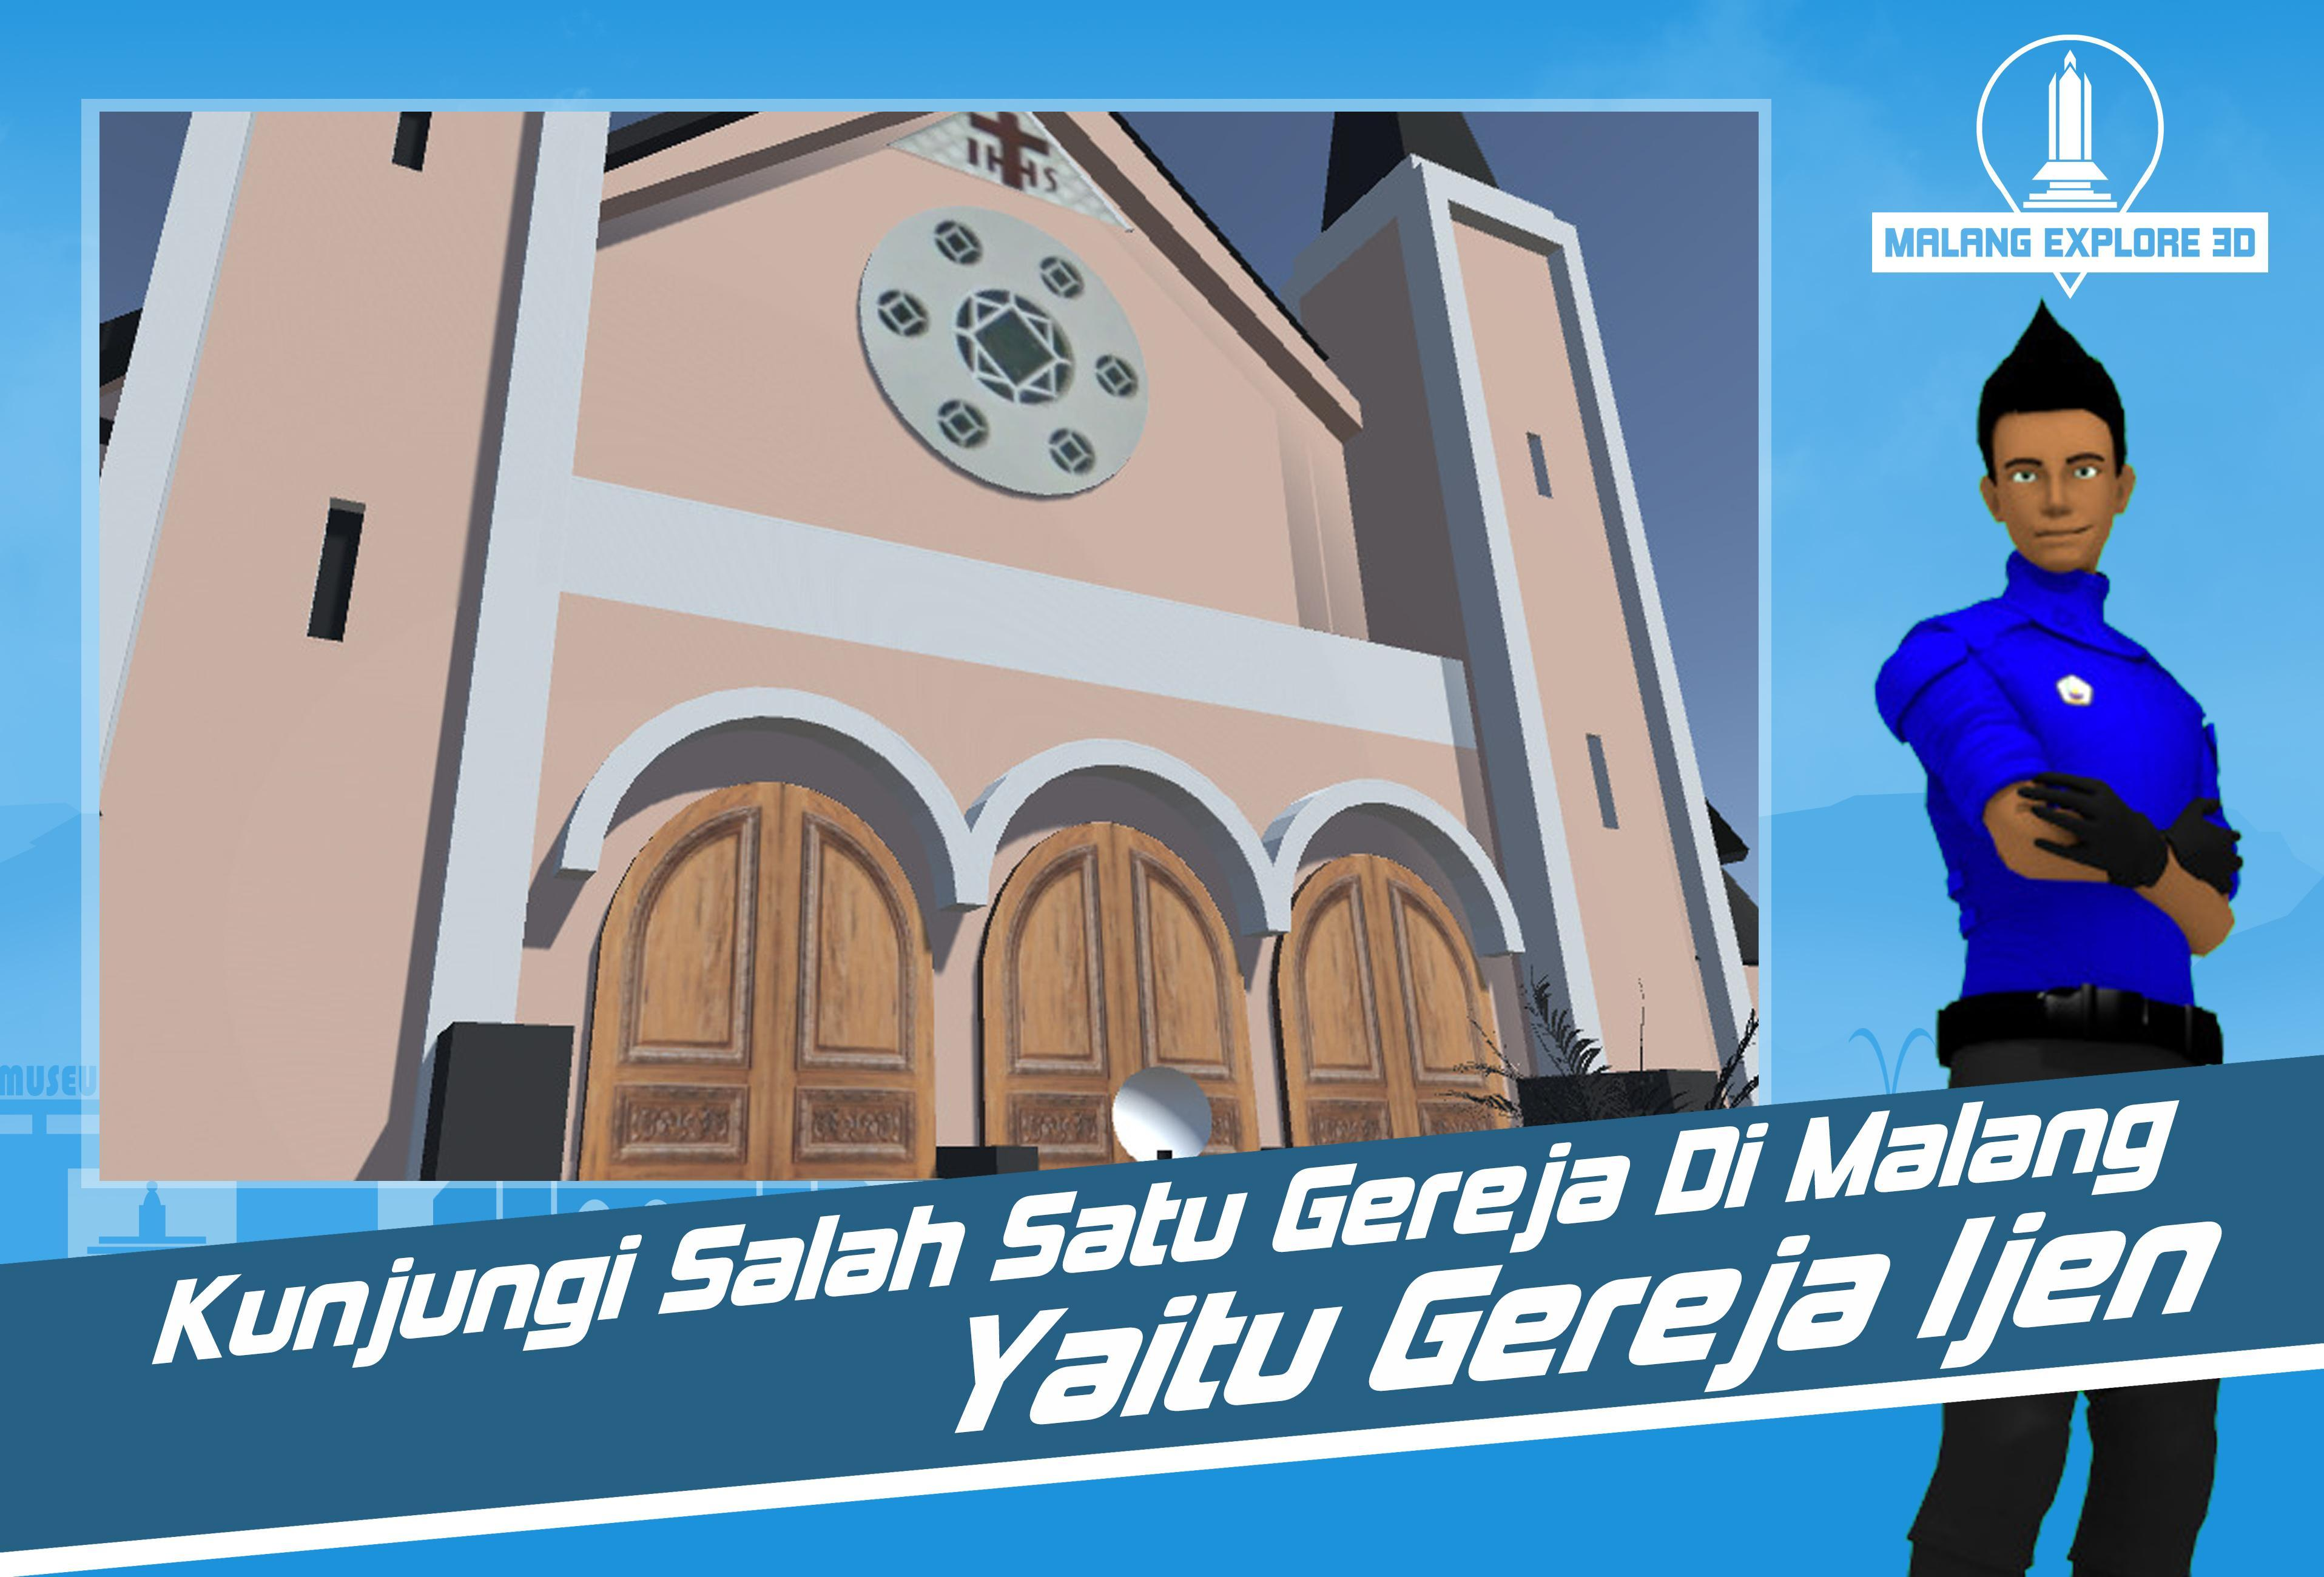 Malang Explore 3d For Android Apk Download